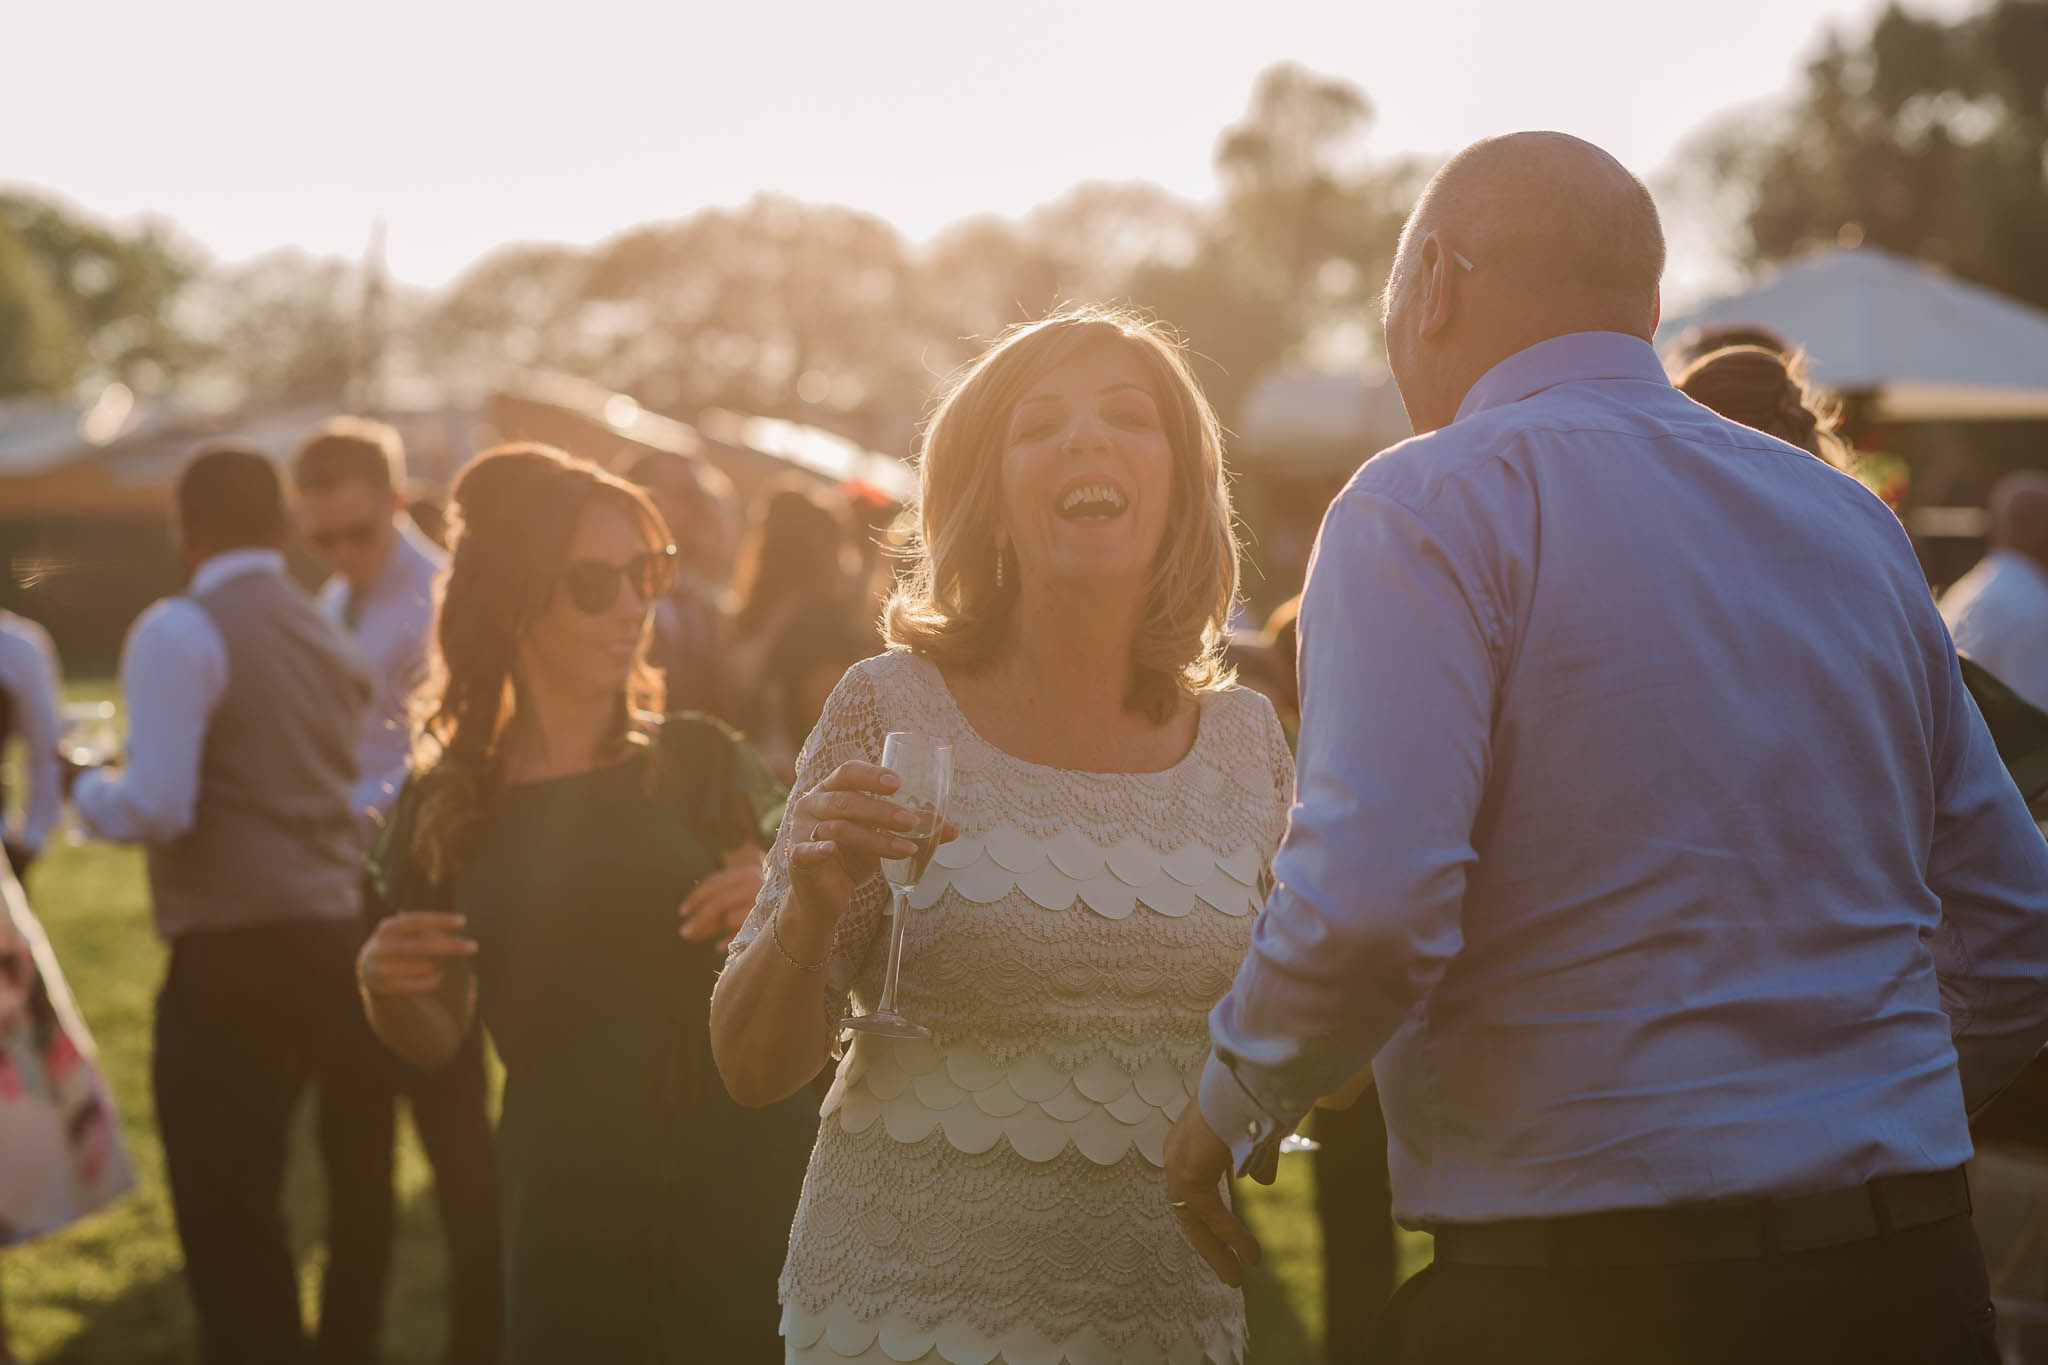 wedding guests dancing outside at sunset